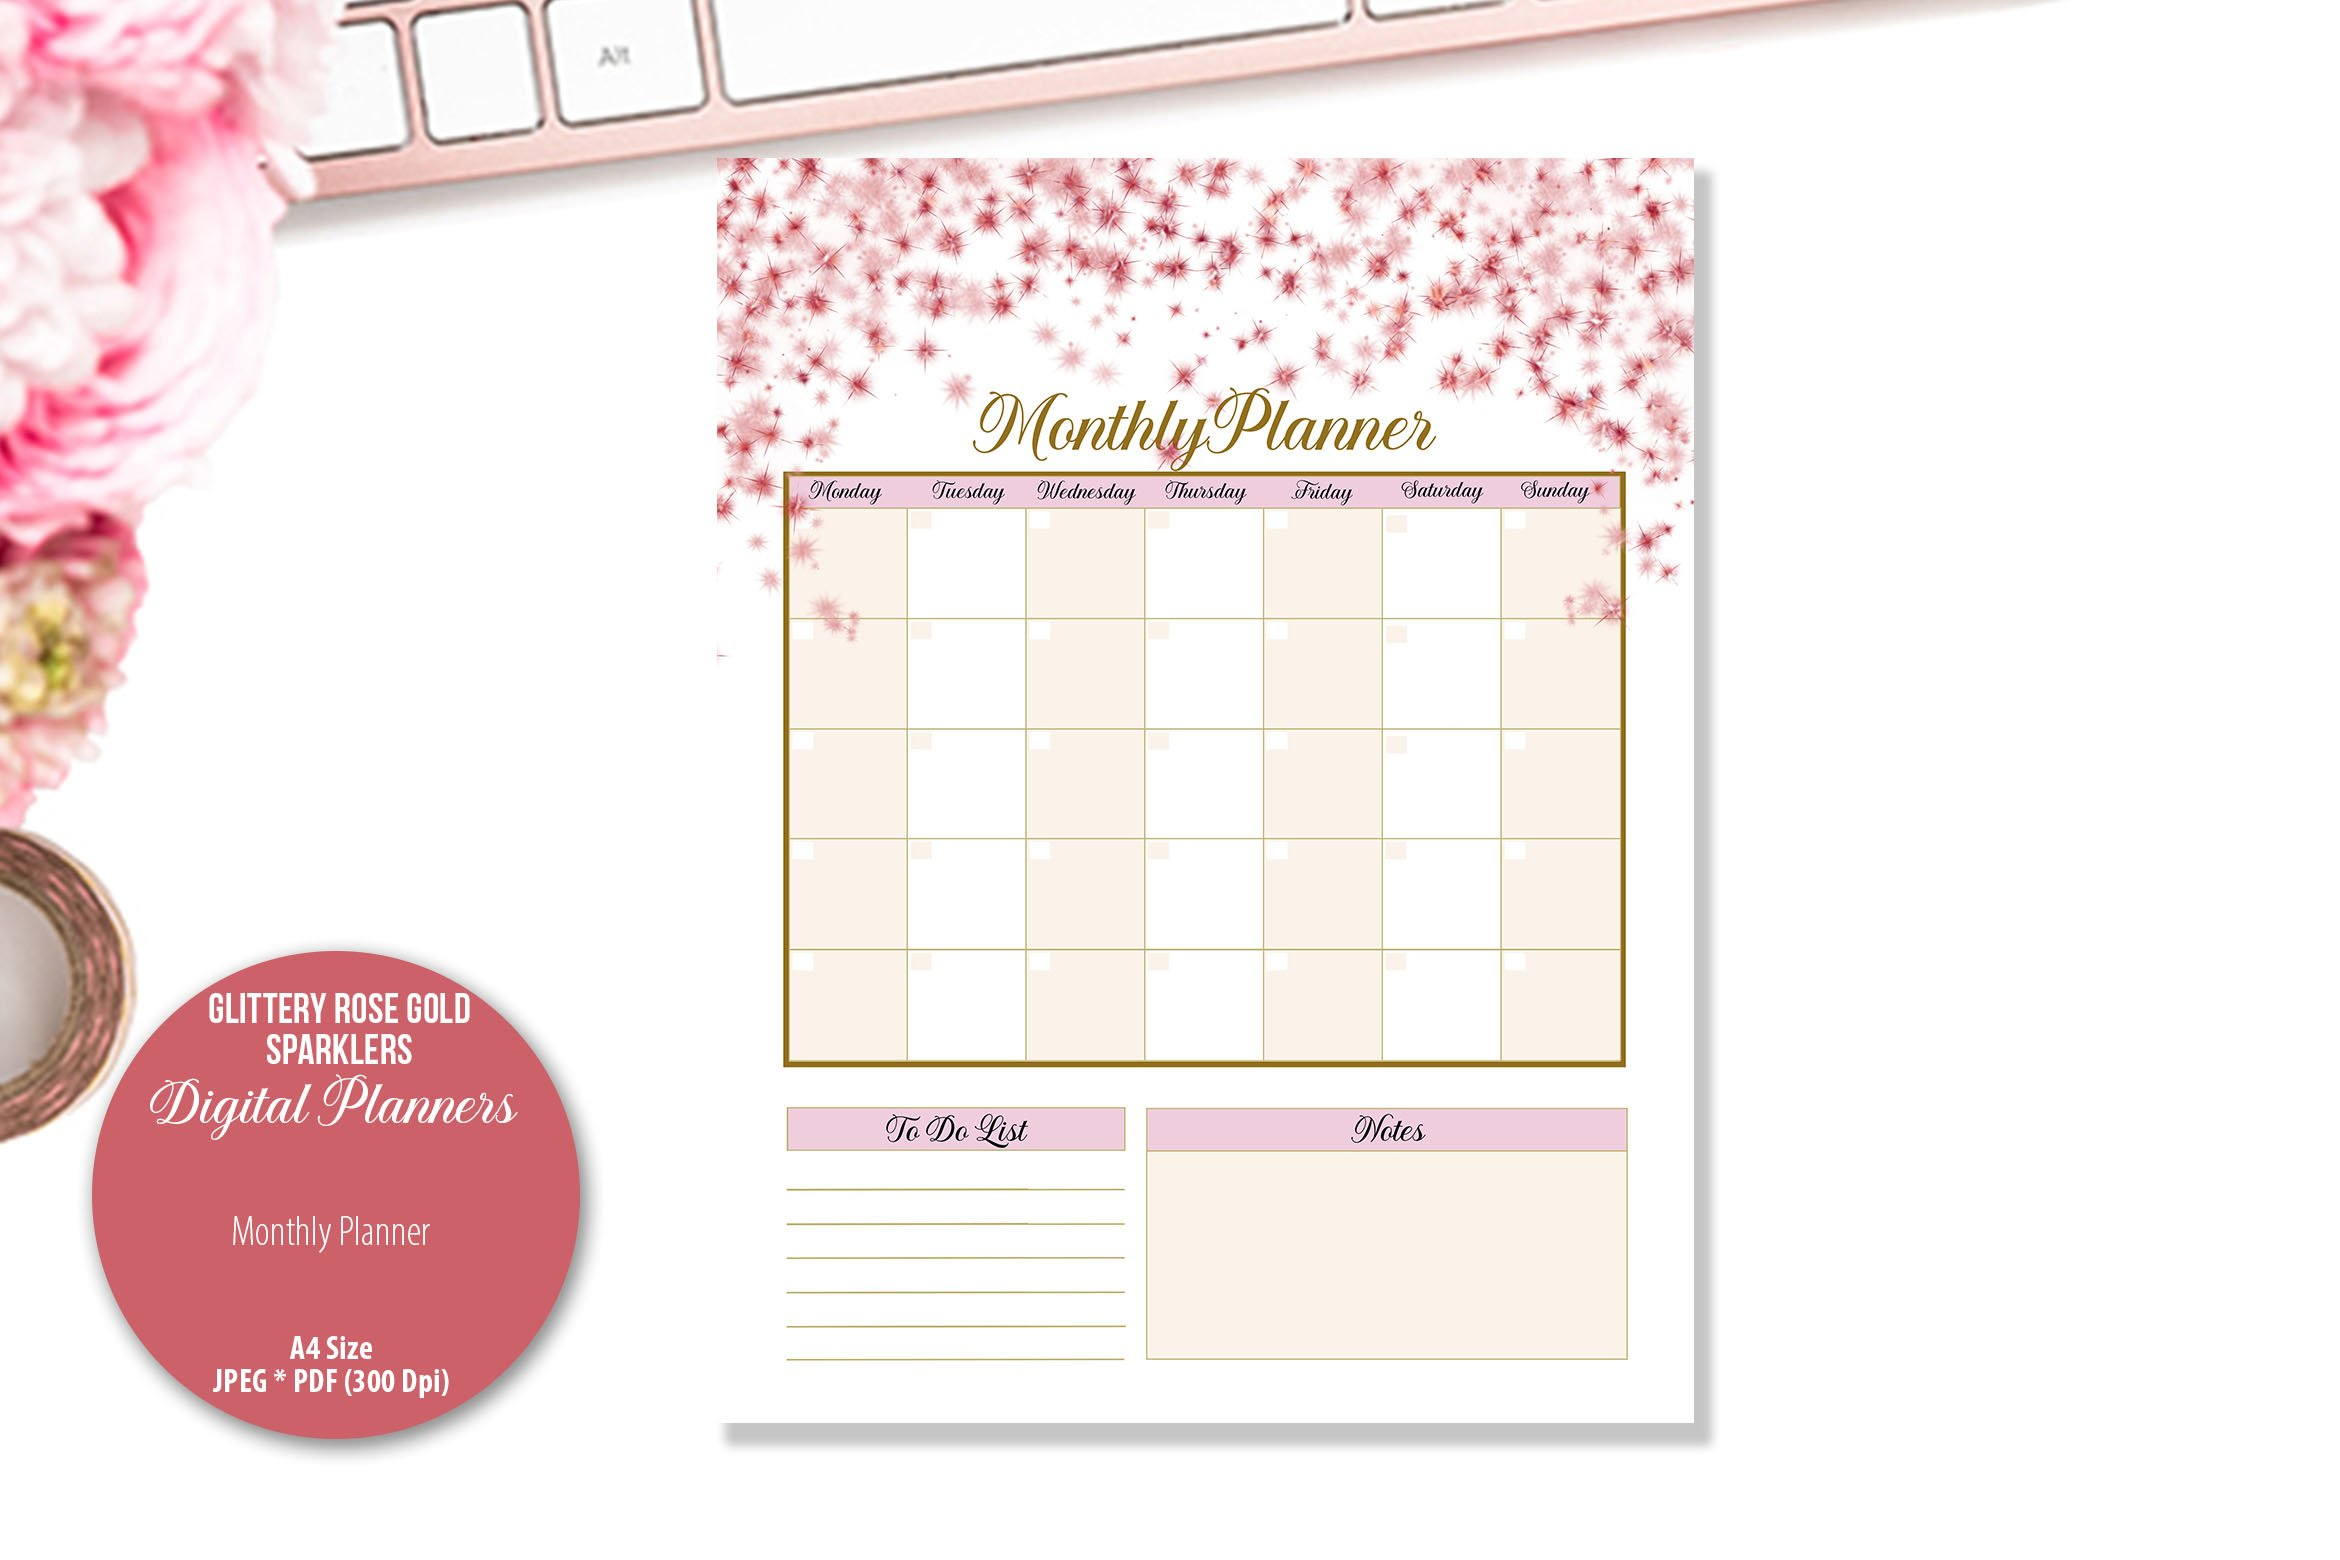 Glittery Rose Gold Sparklers Digital Planner example image 4